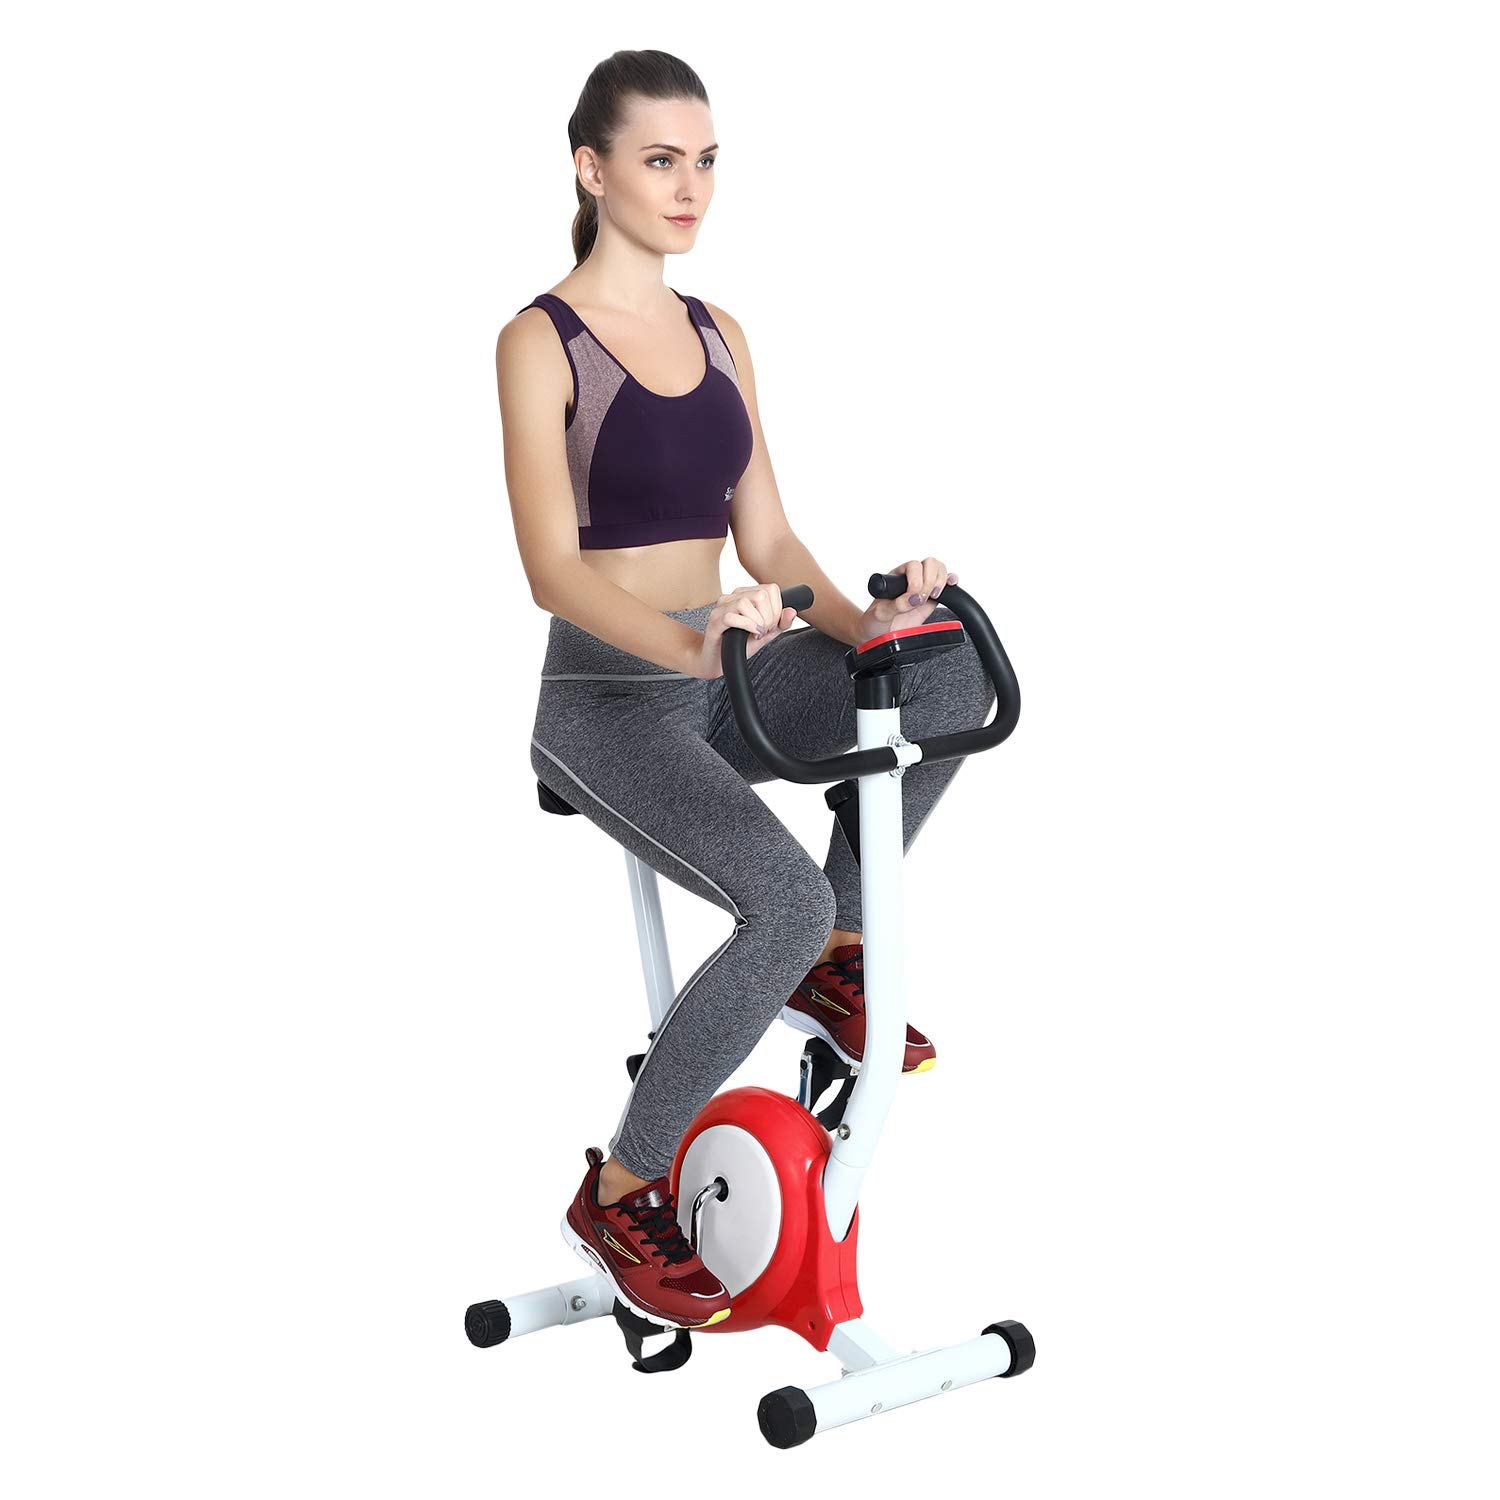 Buy Super Marche Fitness Steel Exercise Bike For Men And Women Blue And Red Online At Low Prices In India Amazon In See more ideas about cyclist, female cyclist, cycling women. buy super marche fitness steel exercise